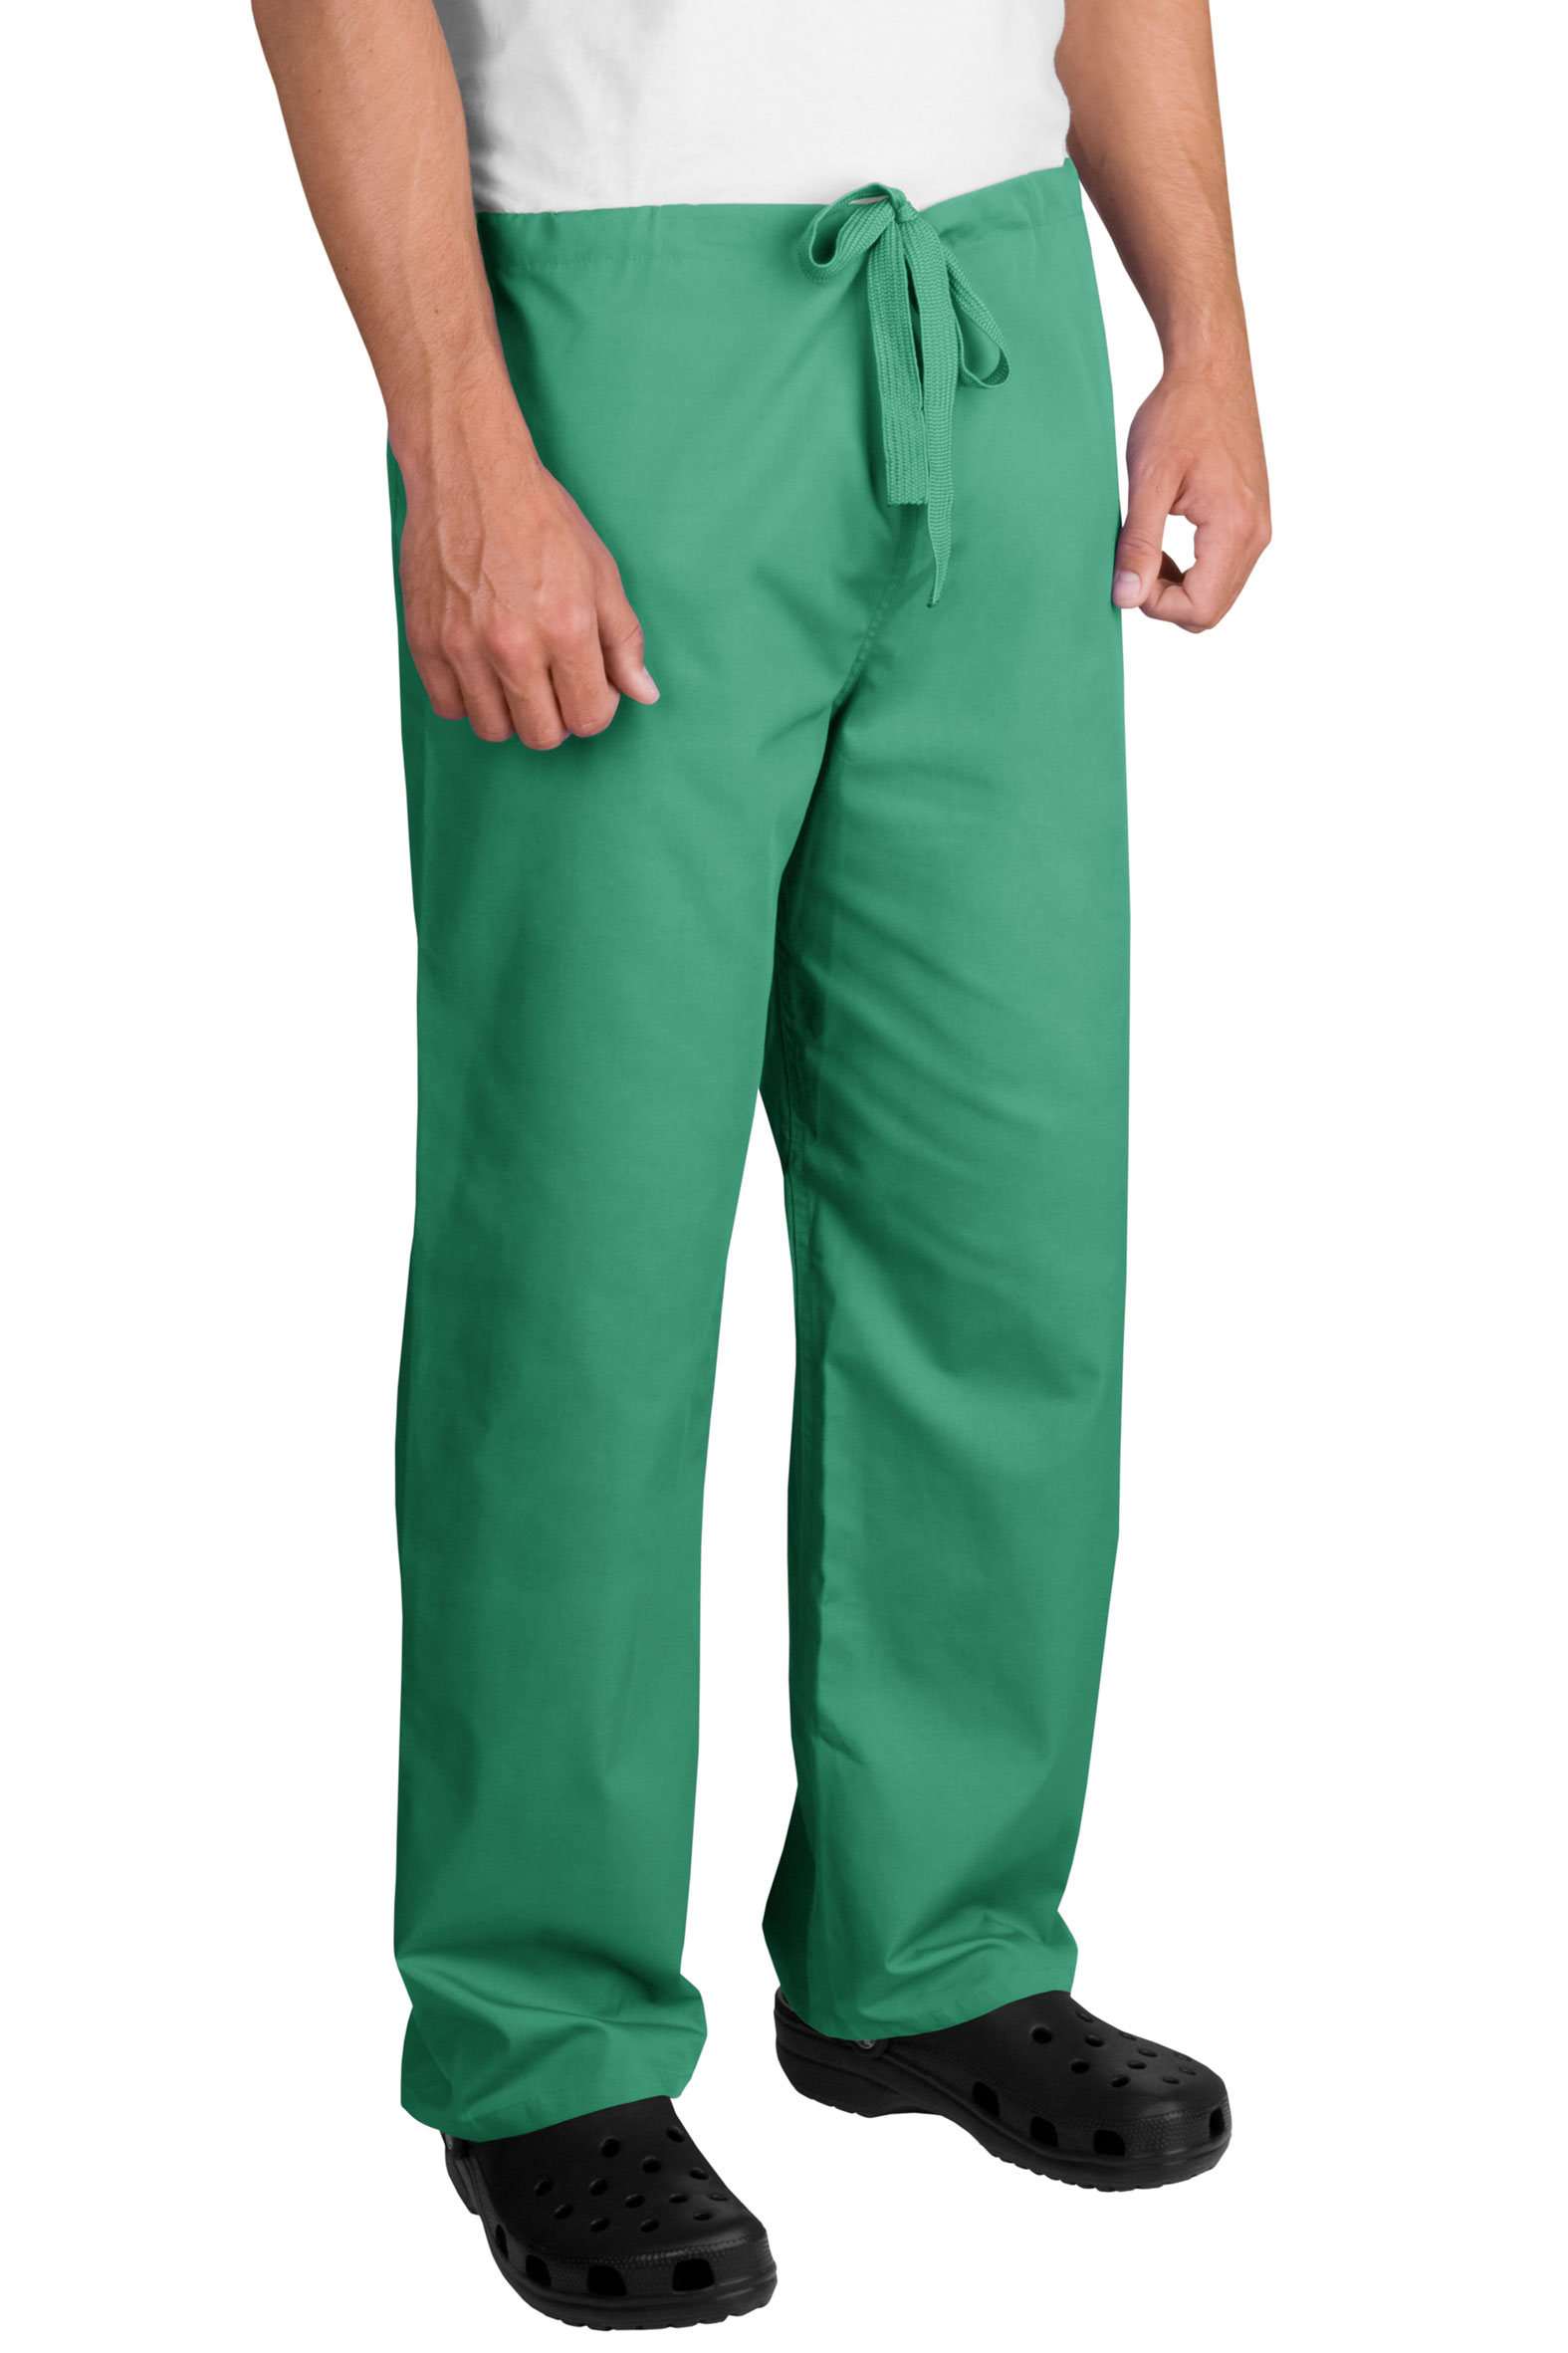 Cornerstone Adult Reversible Scrub Pant